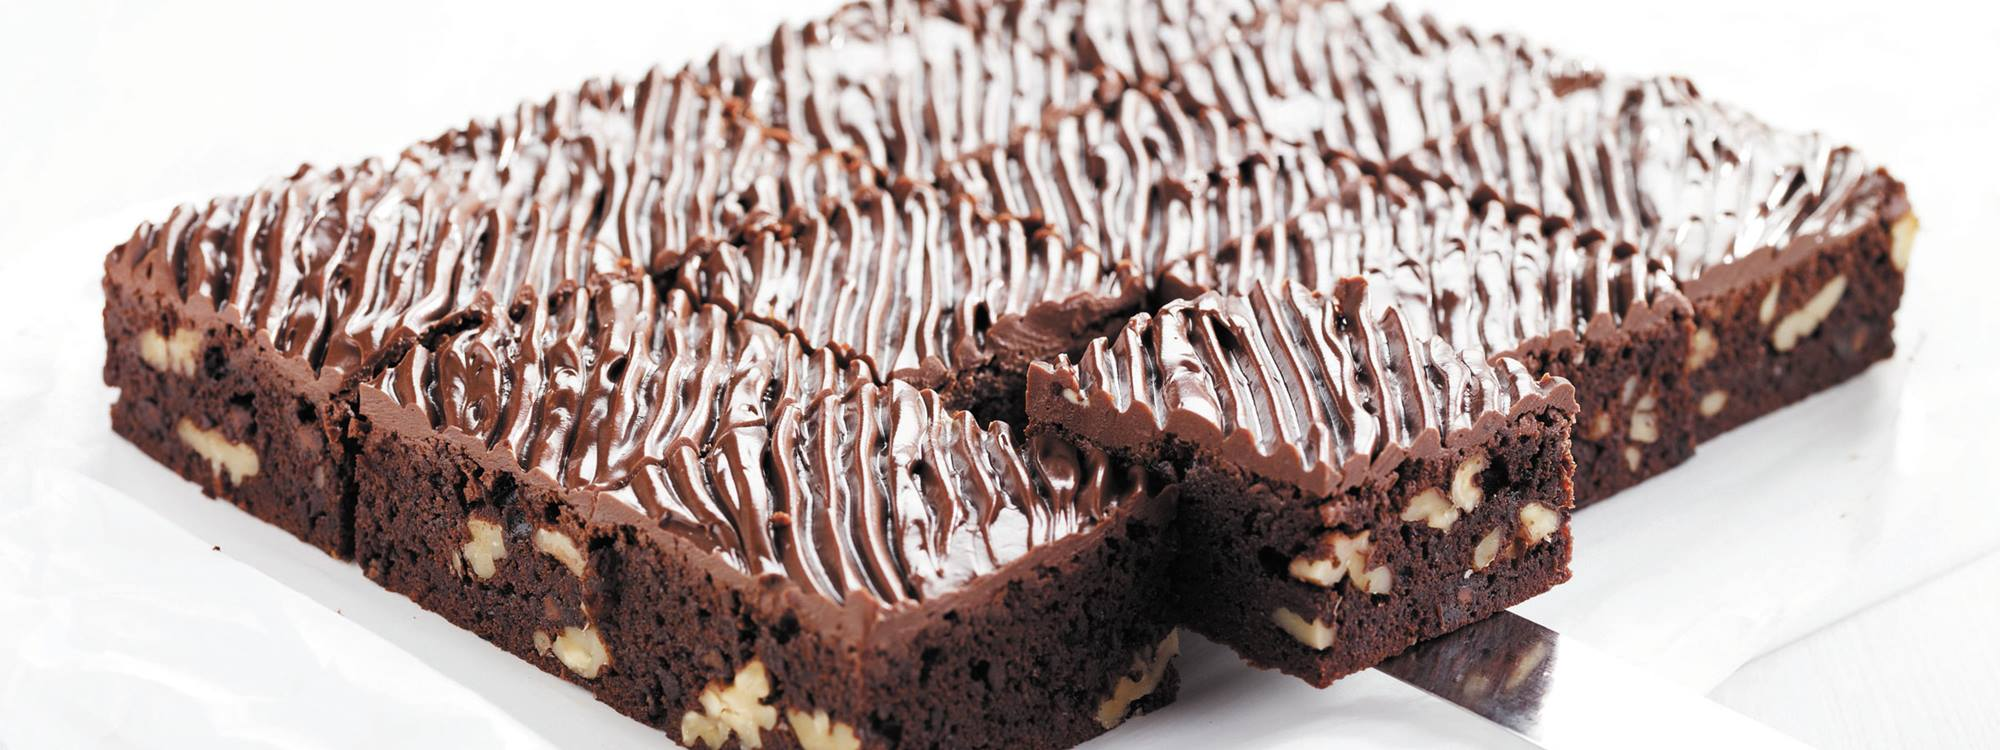 Gluten-free bakery products with whey - chokolate cake in bakery functionalities